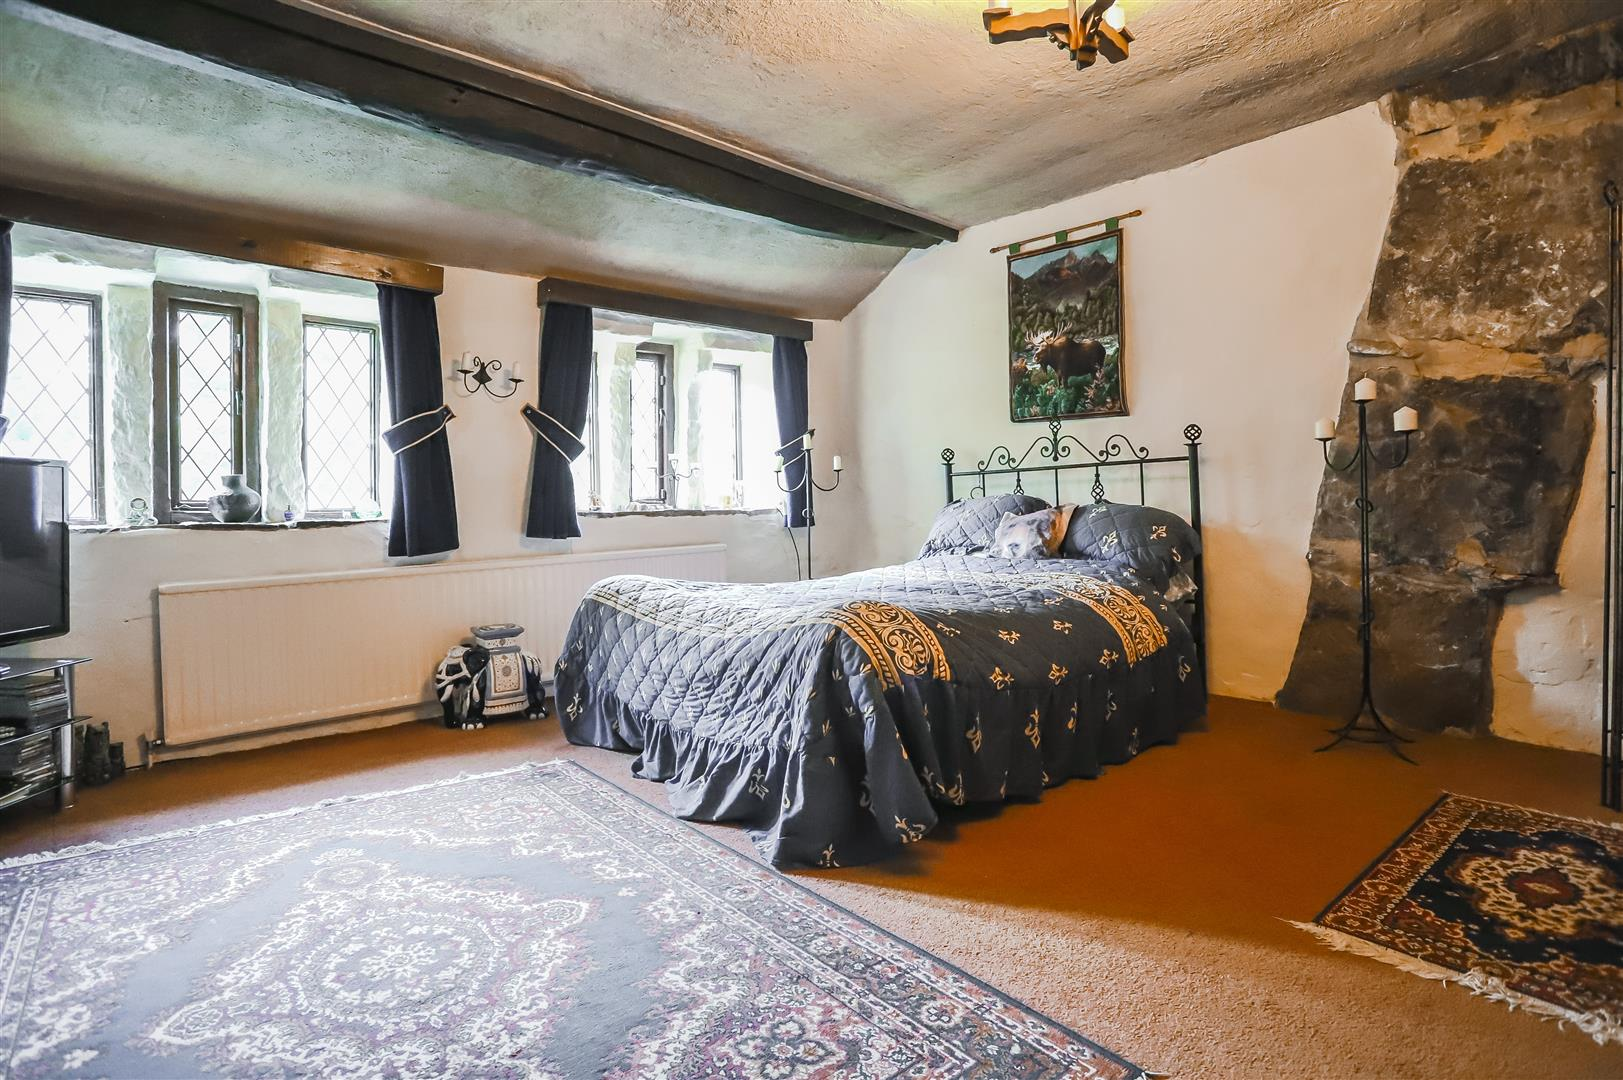 3 Bedroom House For Sale - Image 74